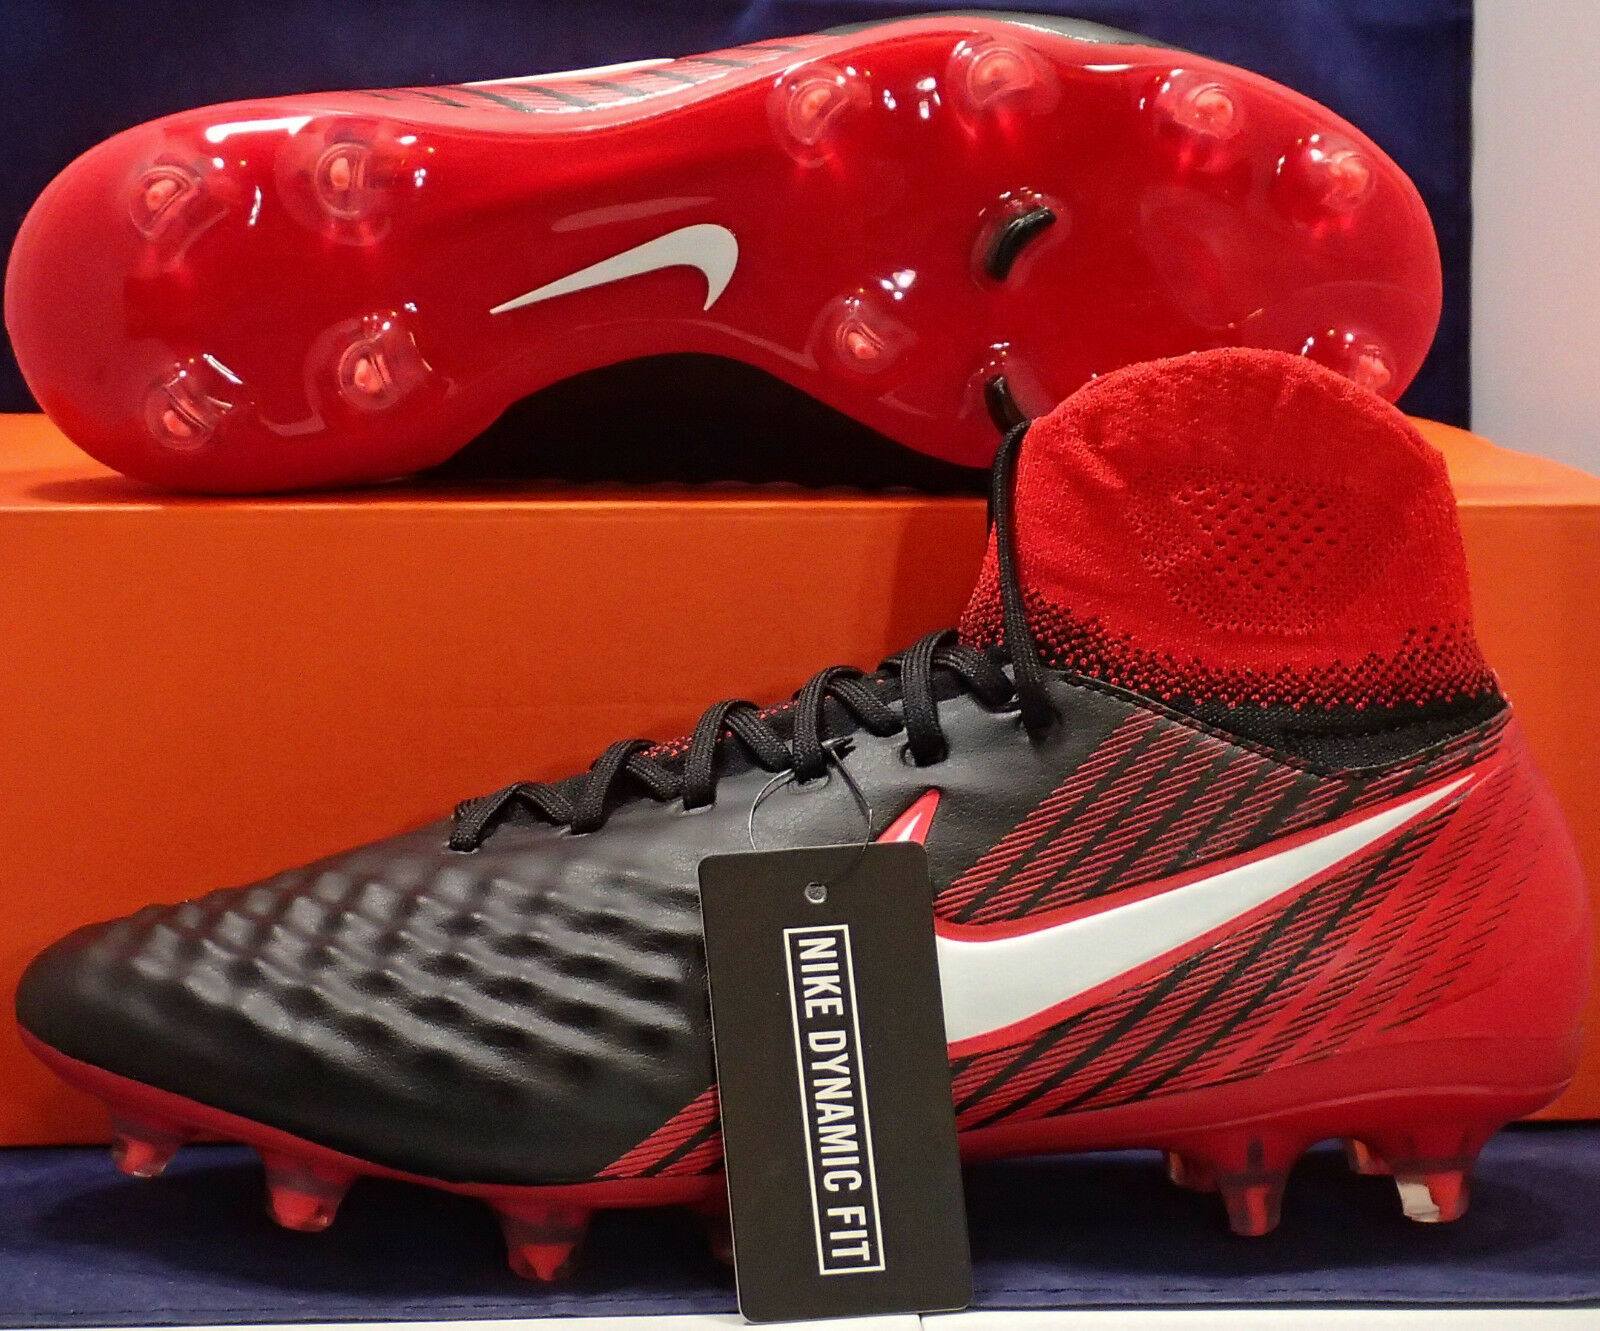 Nike Magista Orden II Red 2 FG Black White Red II Cleats SZ US 8.5 ( 843812-061 ) 6c8122